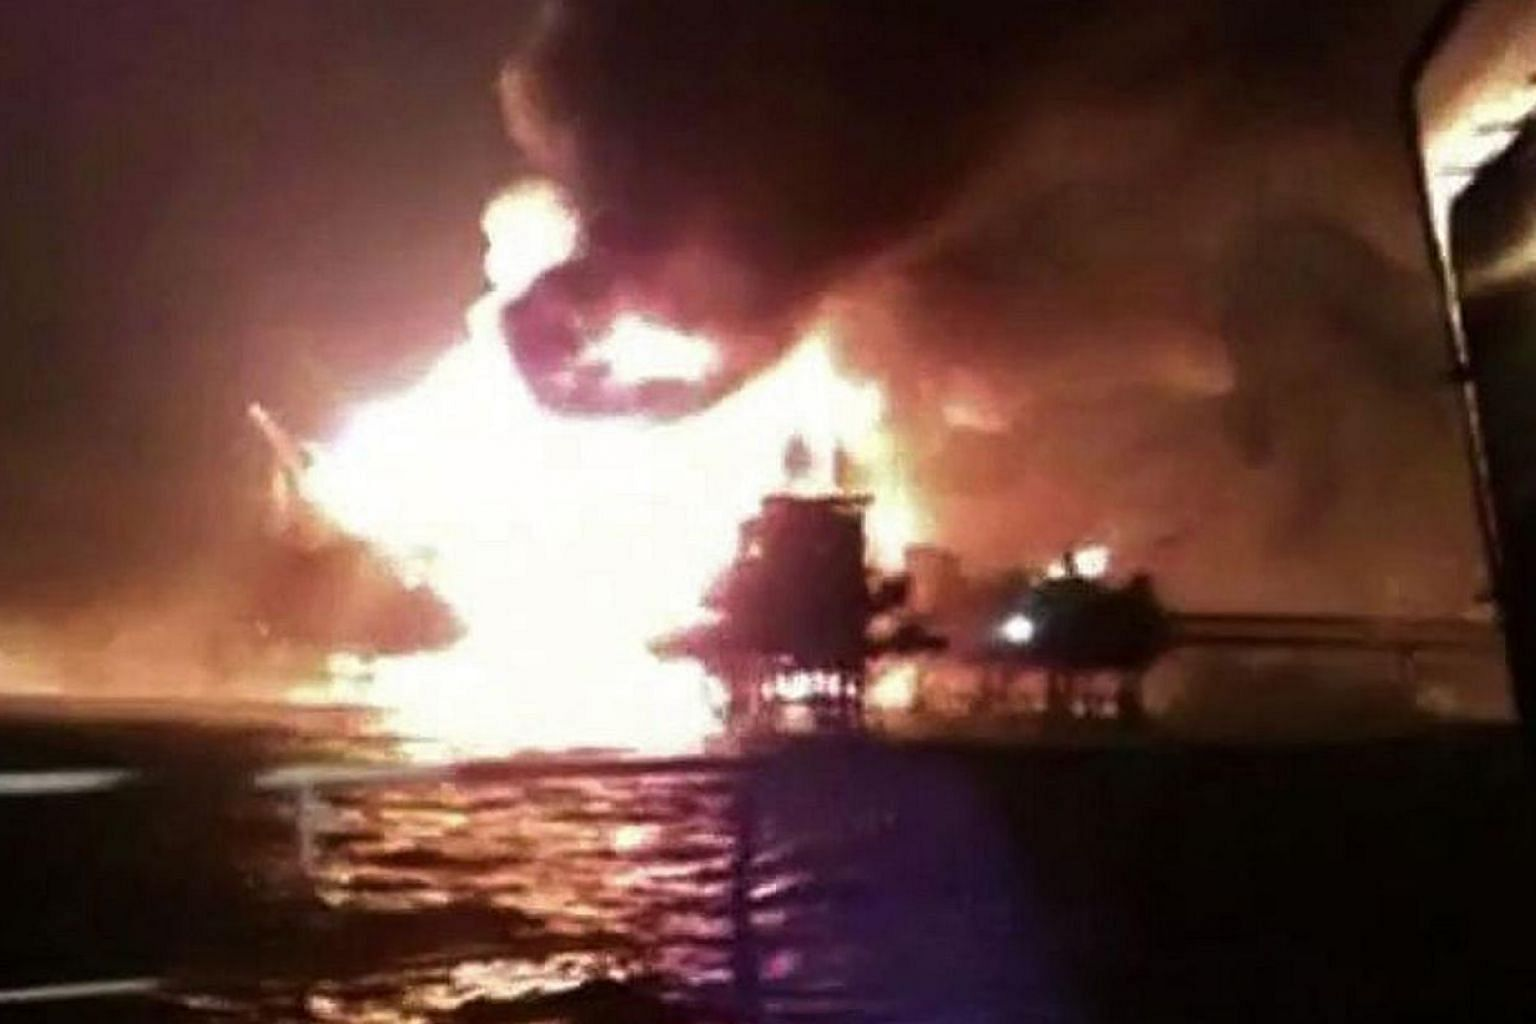 A screengrab from a video of the Abkatun A-Permanente platform on the Gulf of Mexico's Campeche Sound on fire on April 1, 2015. An explosion and a fire erupted on an offshore oil platform operated by Mexico's Pemex on Wednesday, killing at least four